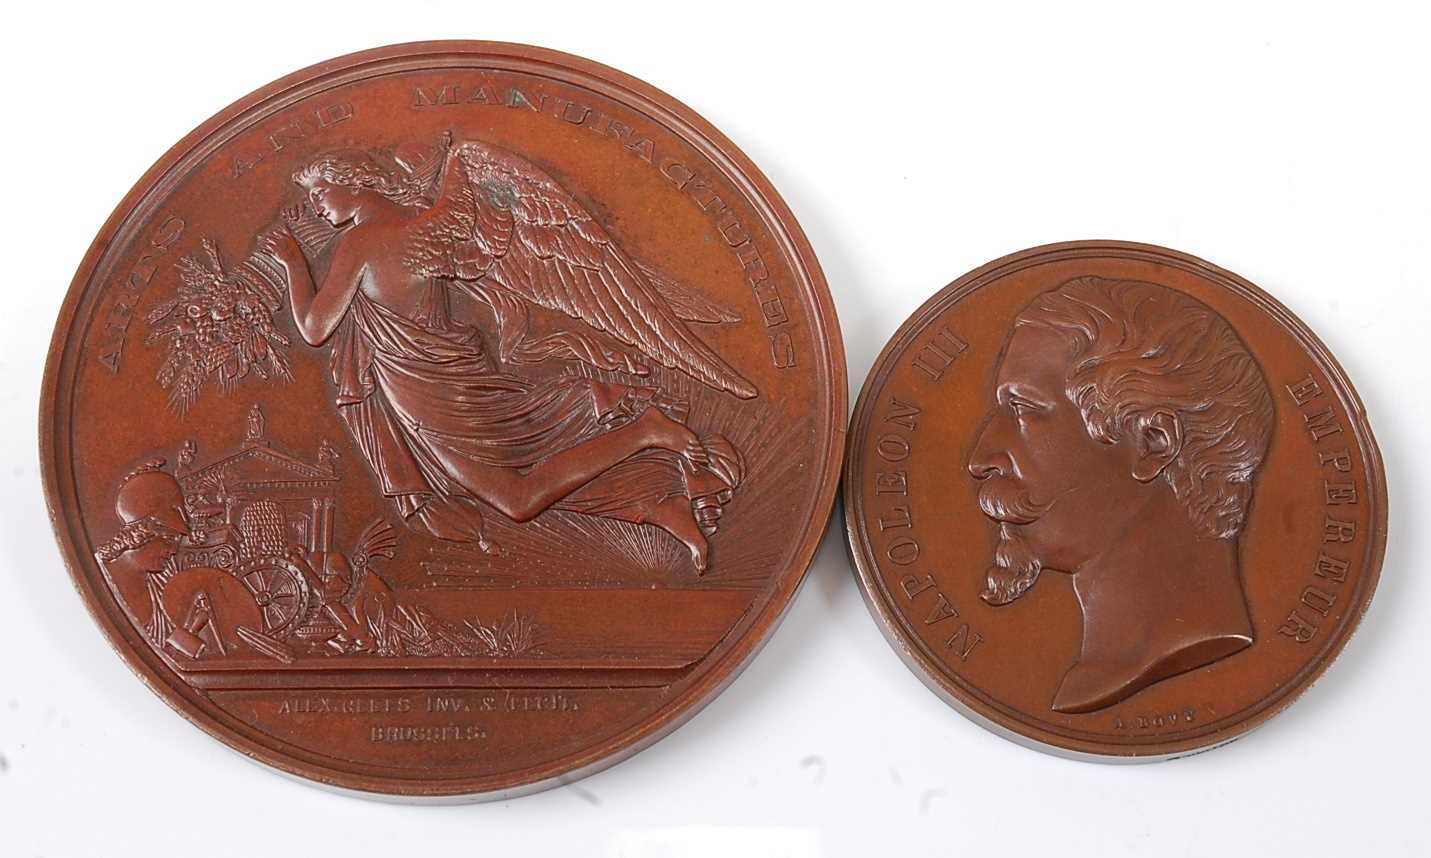 Ireland, Dublin International Exhibition 1865 Arts and Manufactures medal by Alexandre Geefs (1829-